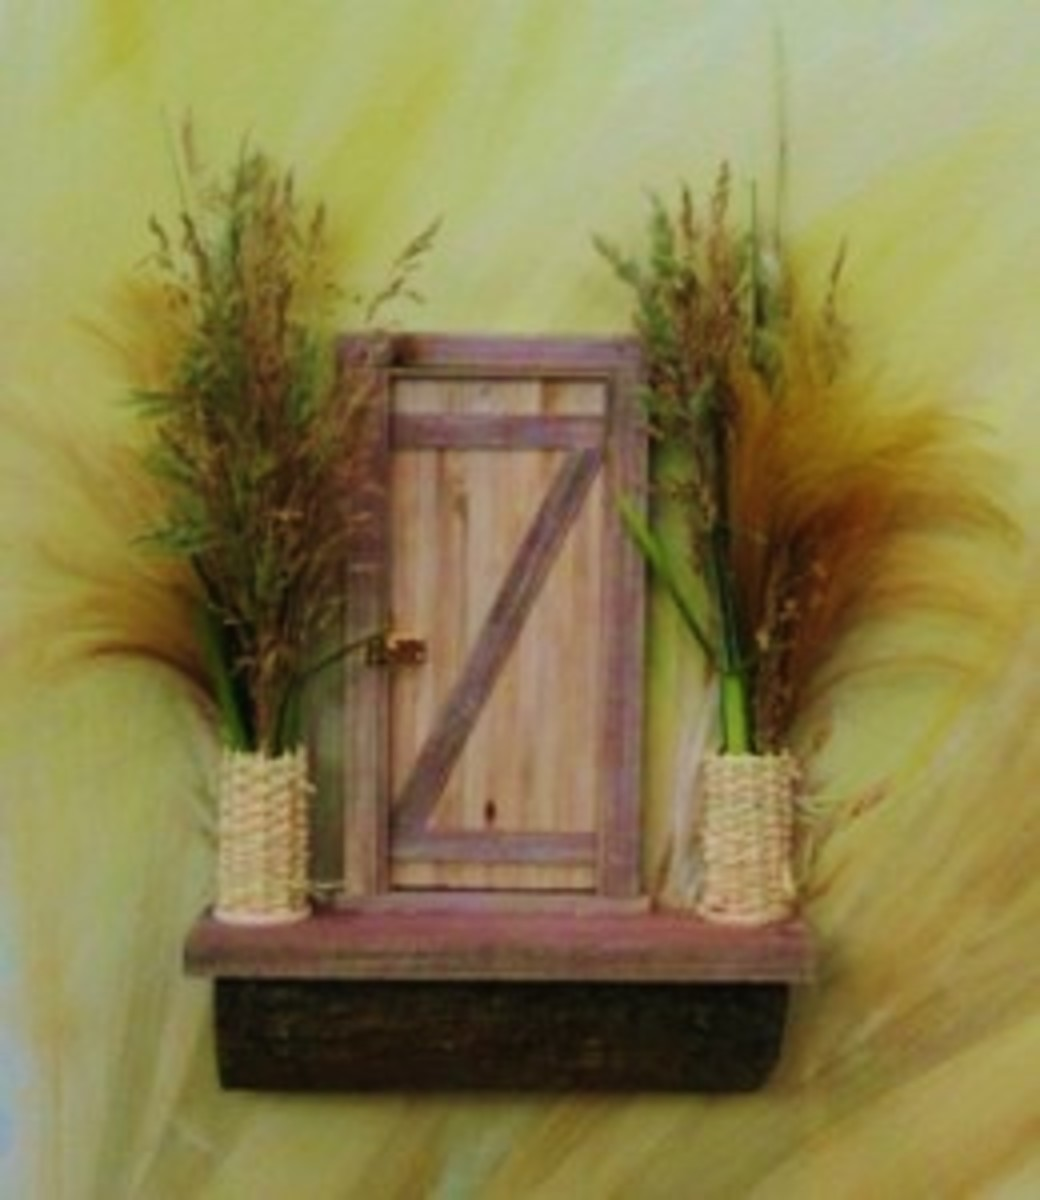 One of the famous Fairy Doors of Ann Arbor, featured on the Urban Fairies website.